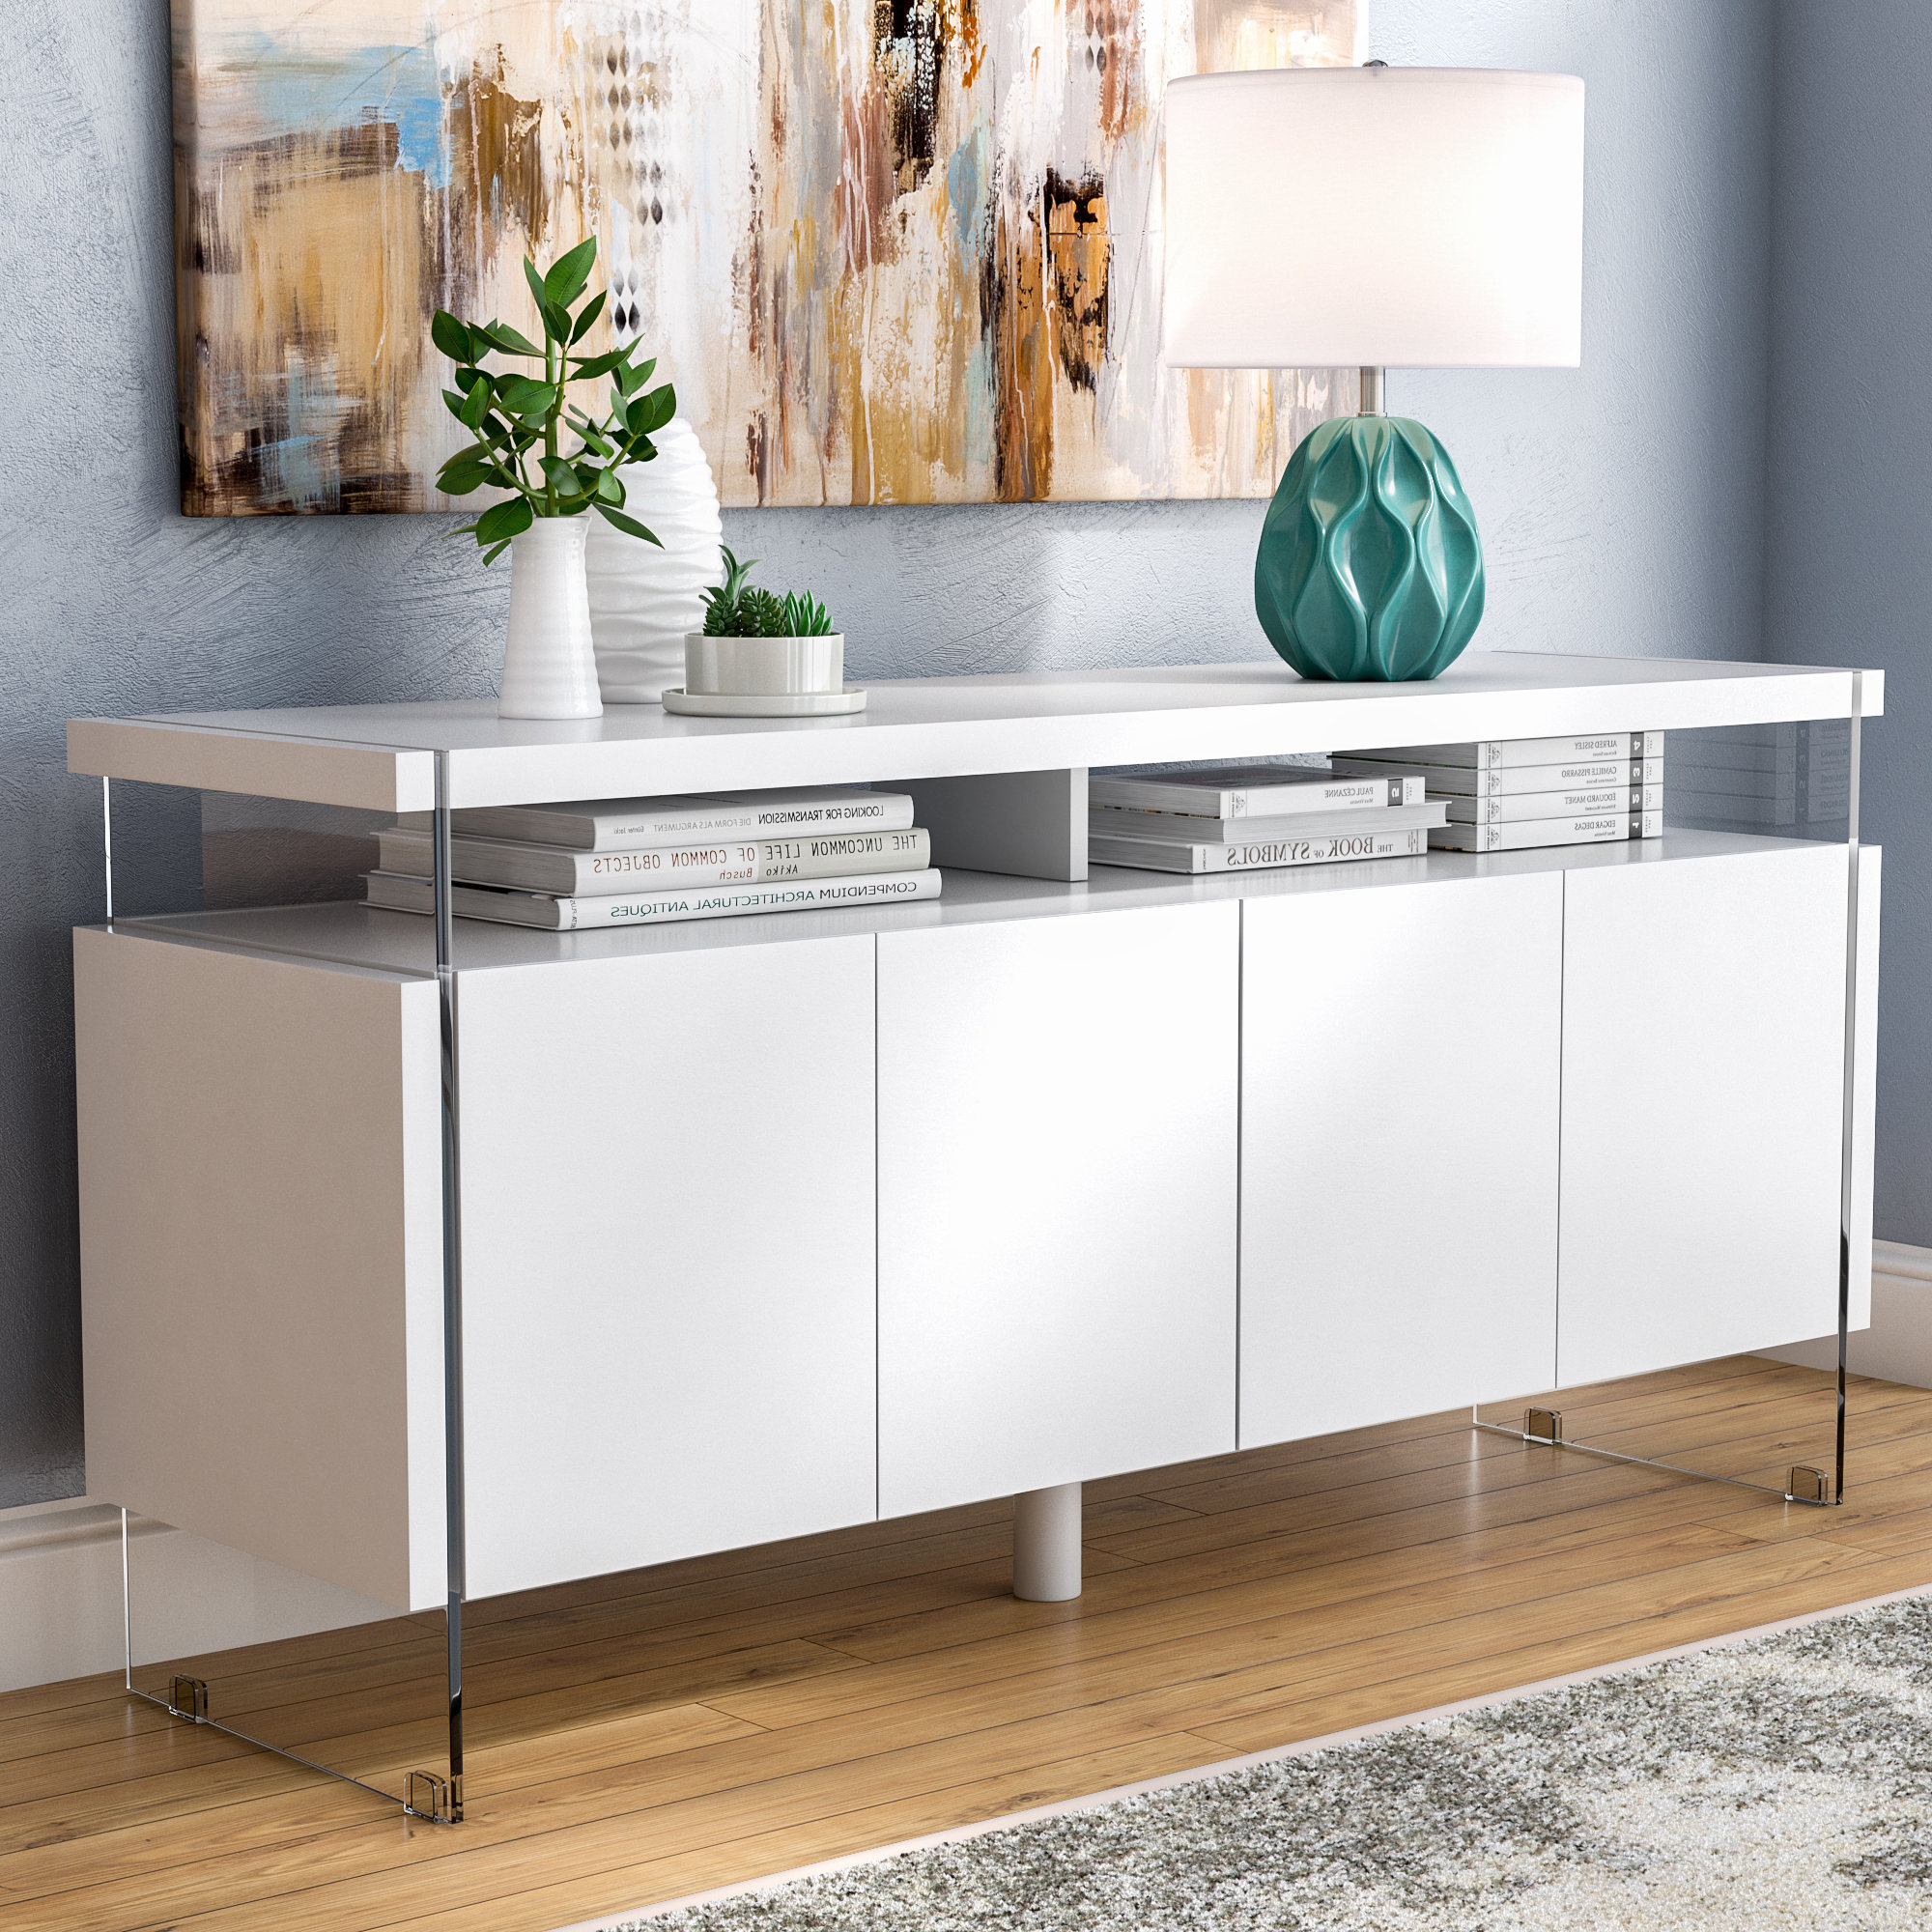 Elyza 4 Door Credenza (Gallery 16 of 20)